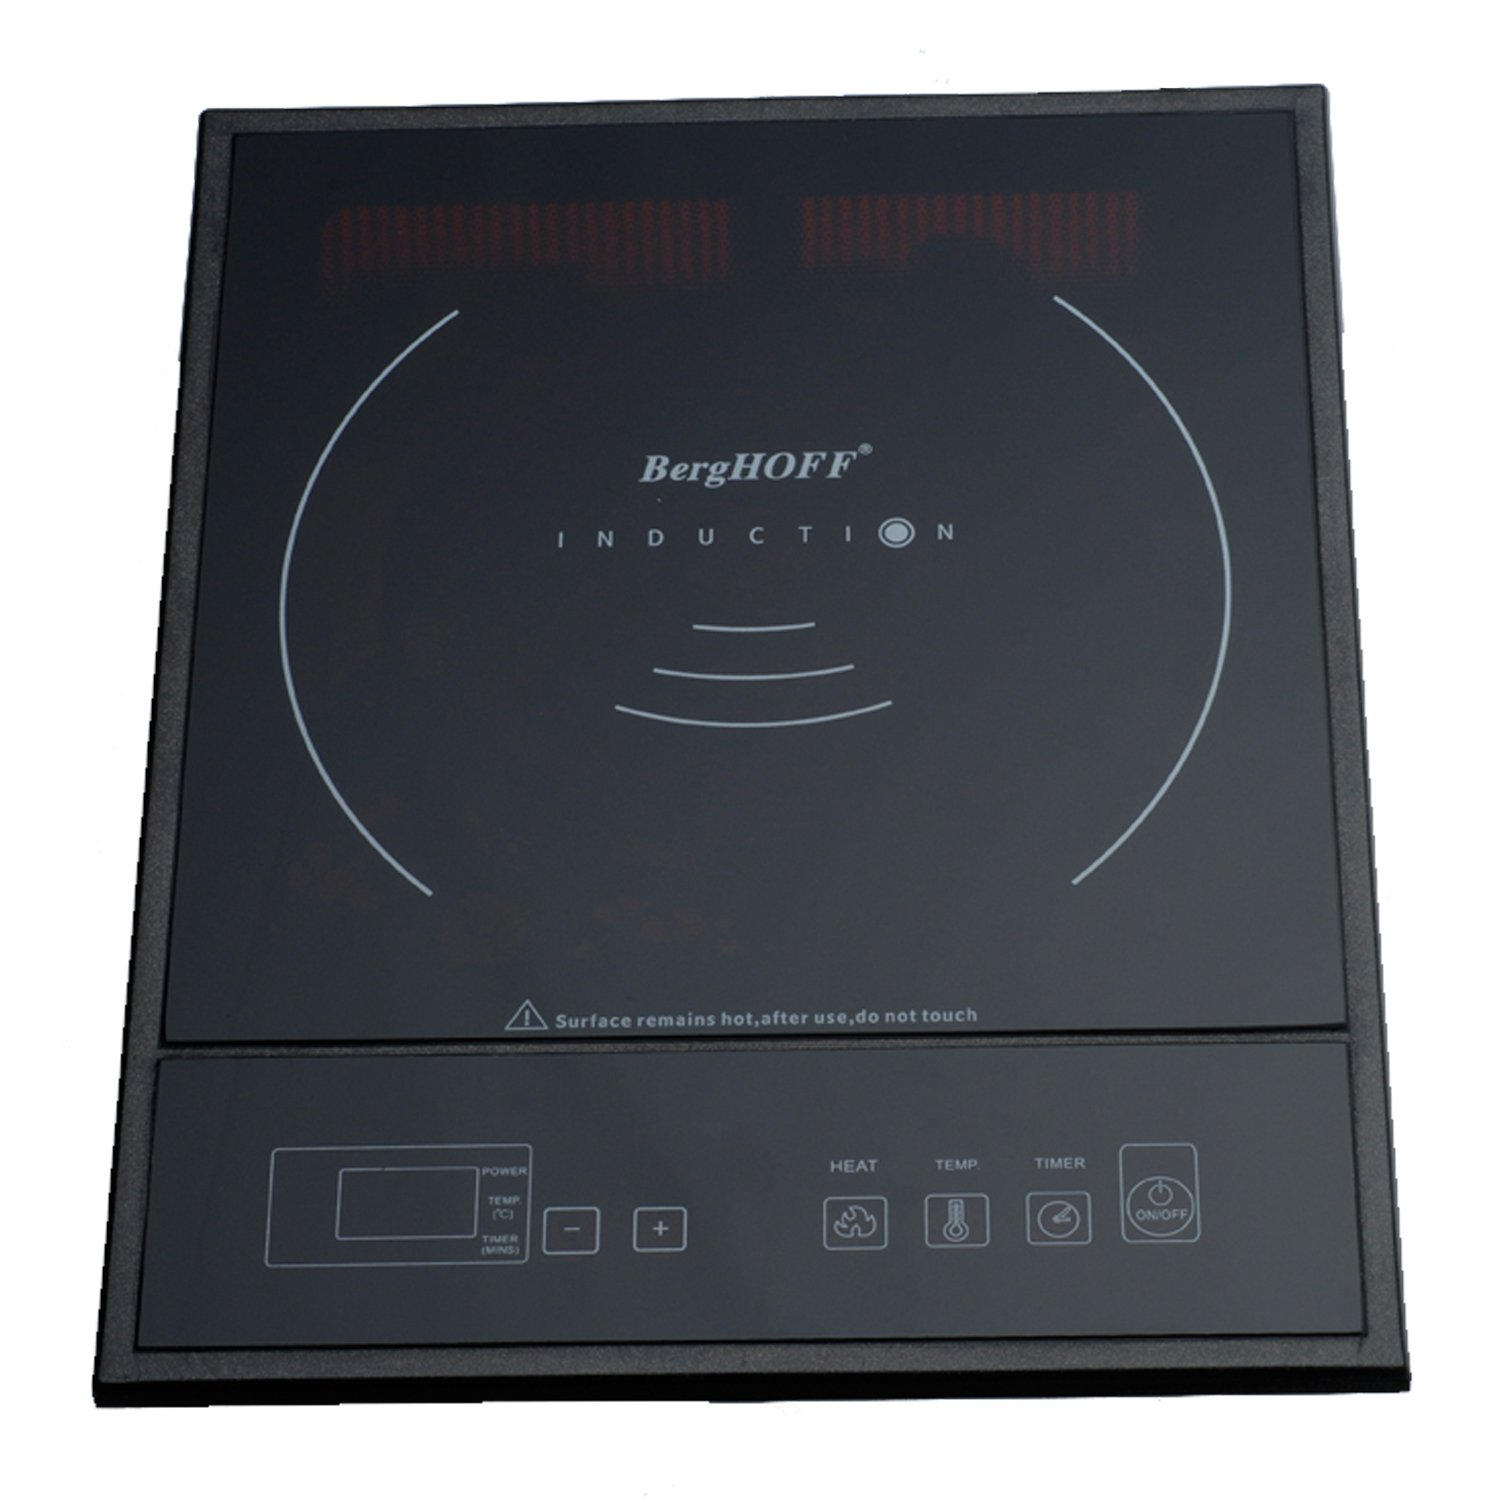 Top 10 Best Induction Cooktop Reviews in 2020 8